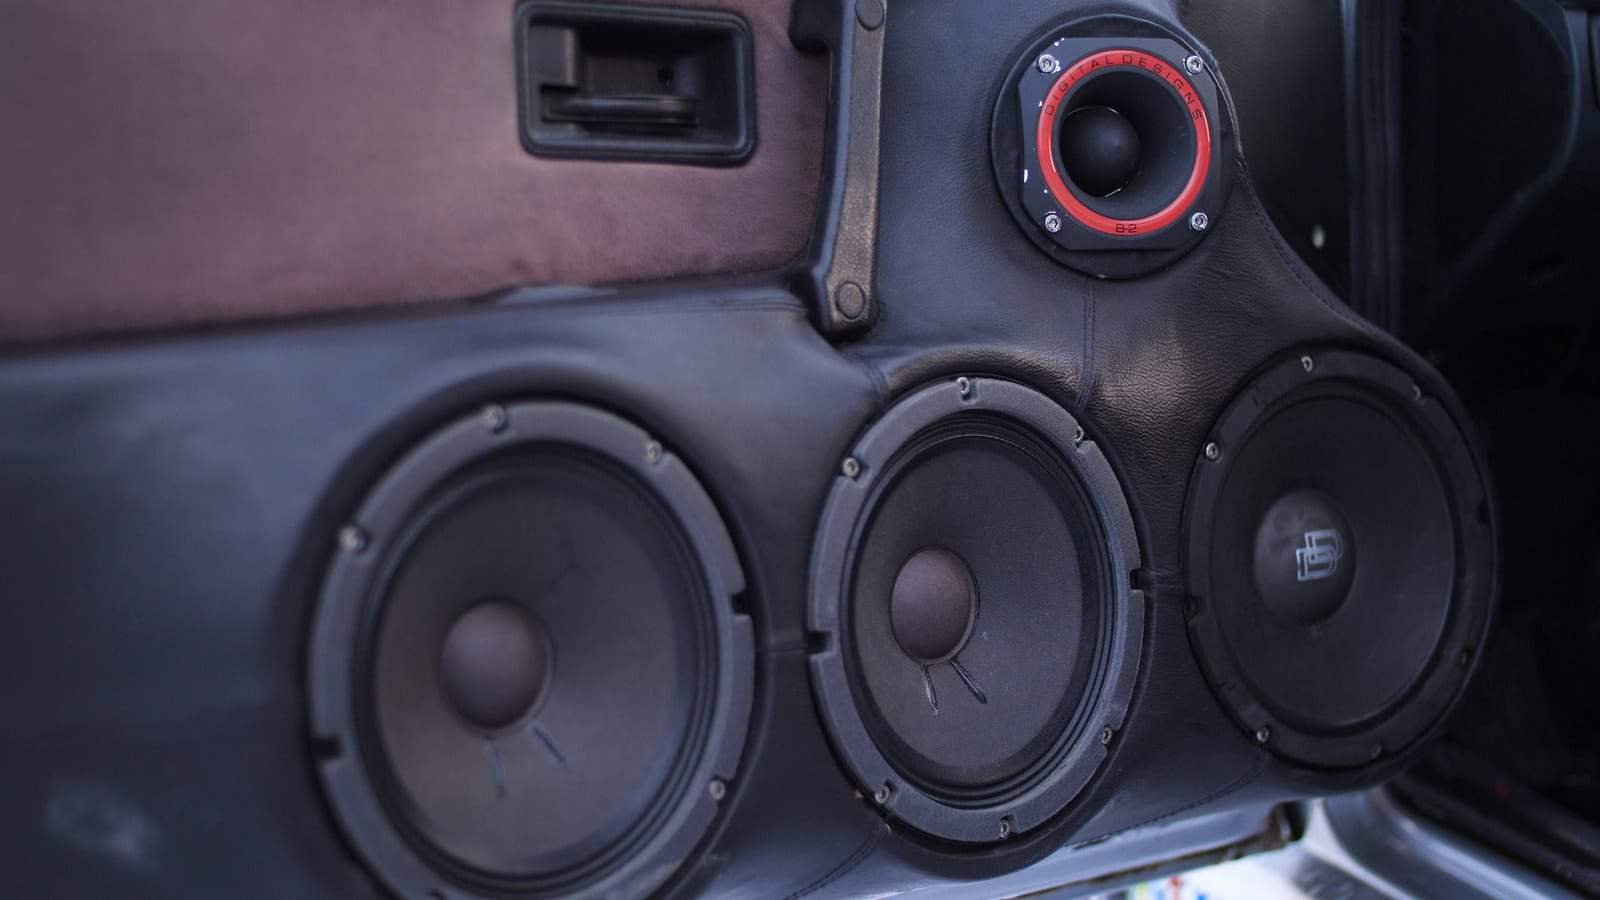 How To Make Car Speakers Louder Without An Amplifier